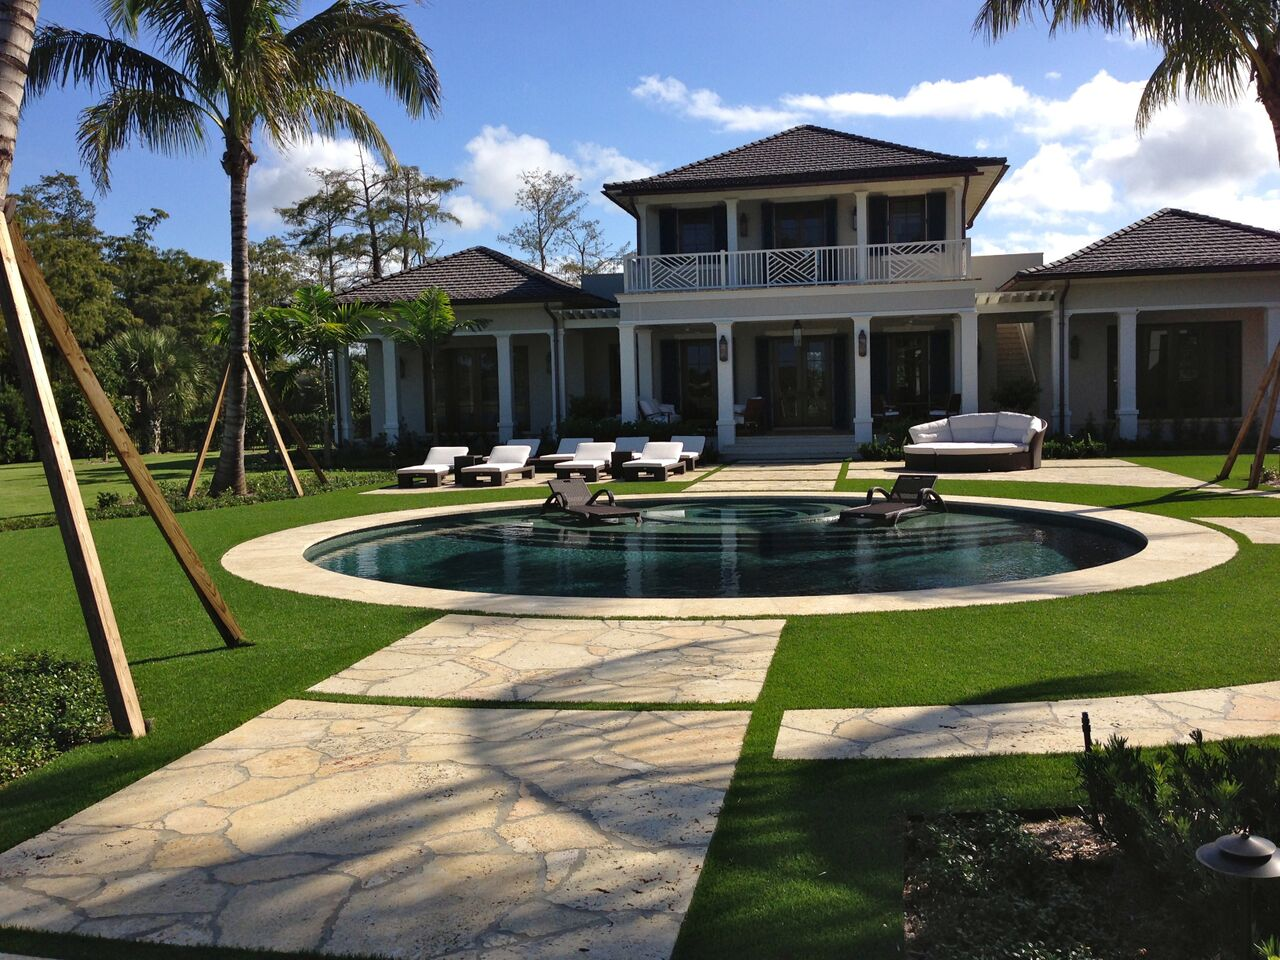 where can i get high-quality synthetic grass in florida this summer